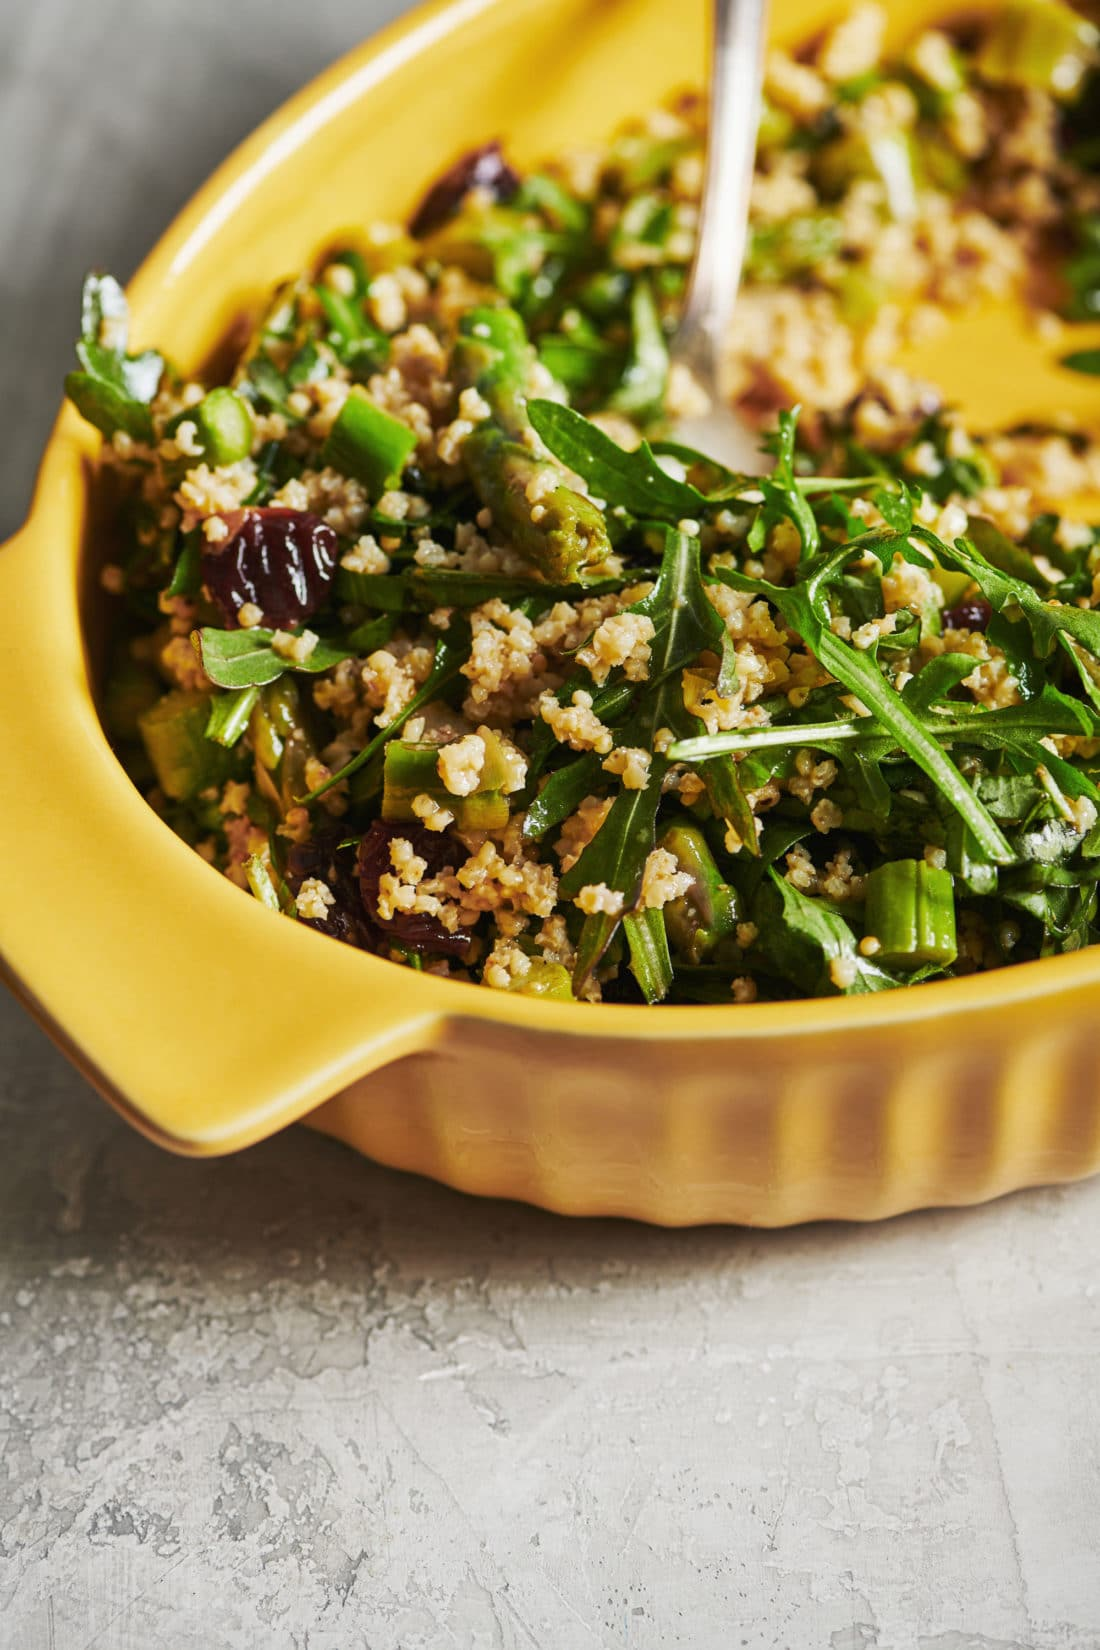 Millet and Greens Salad